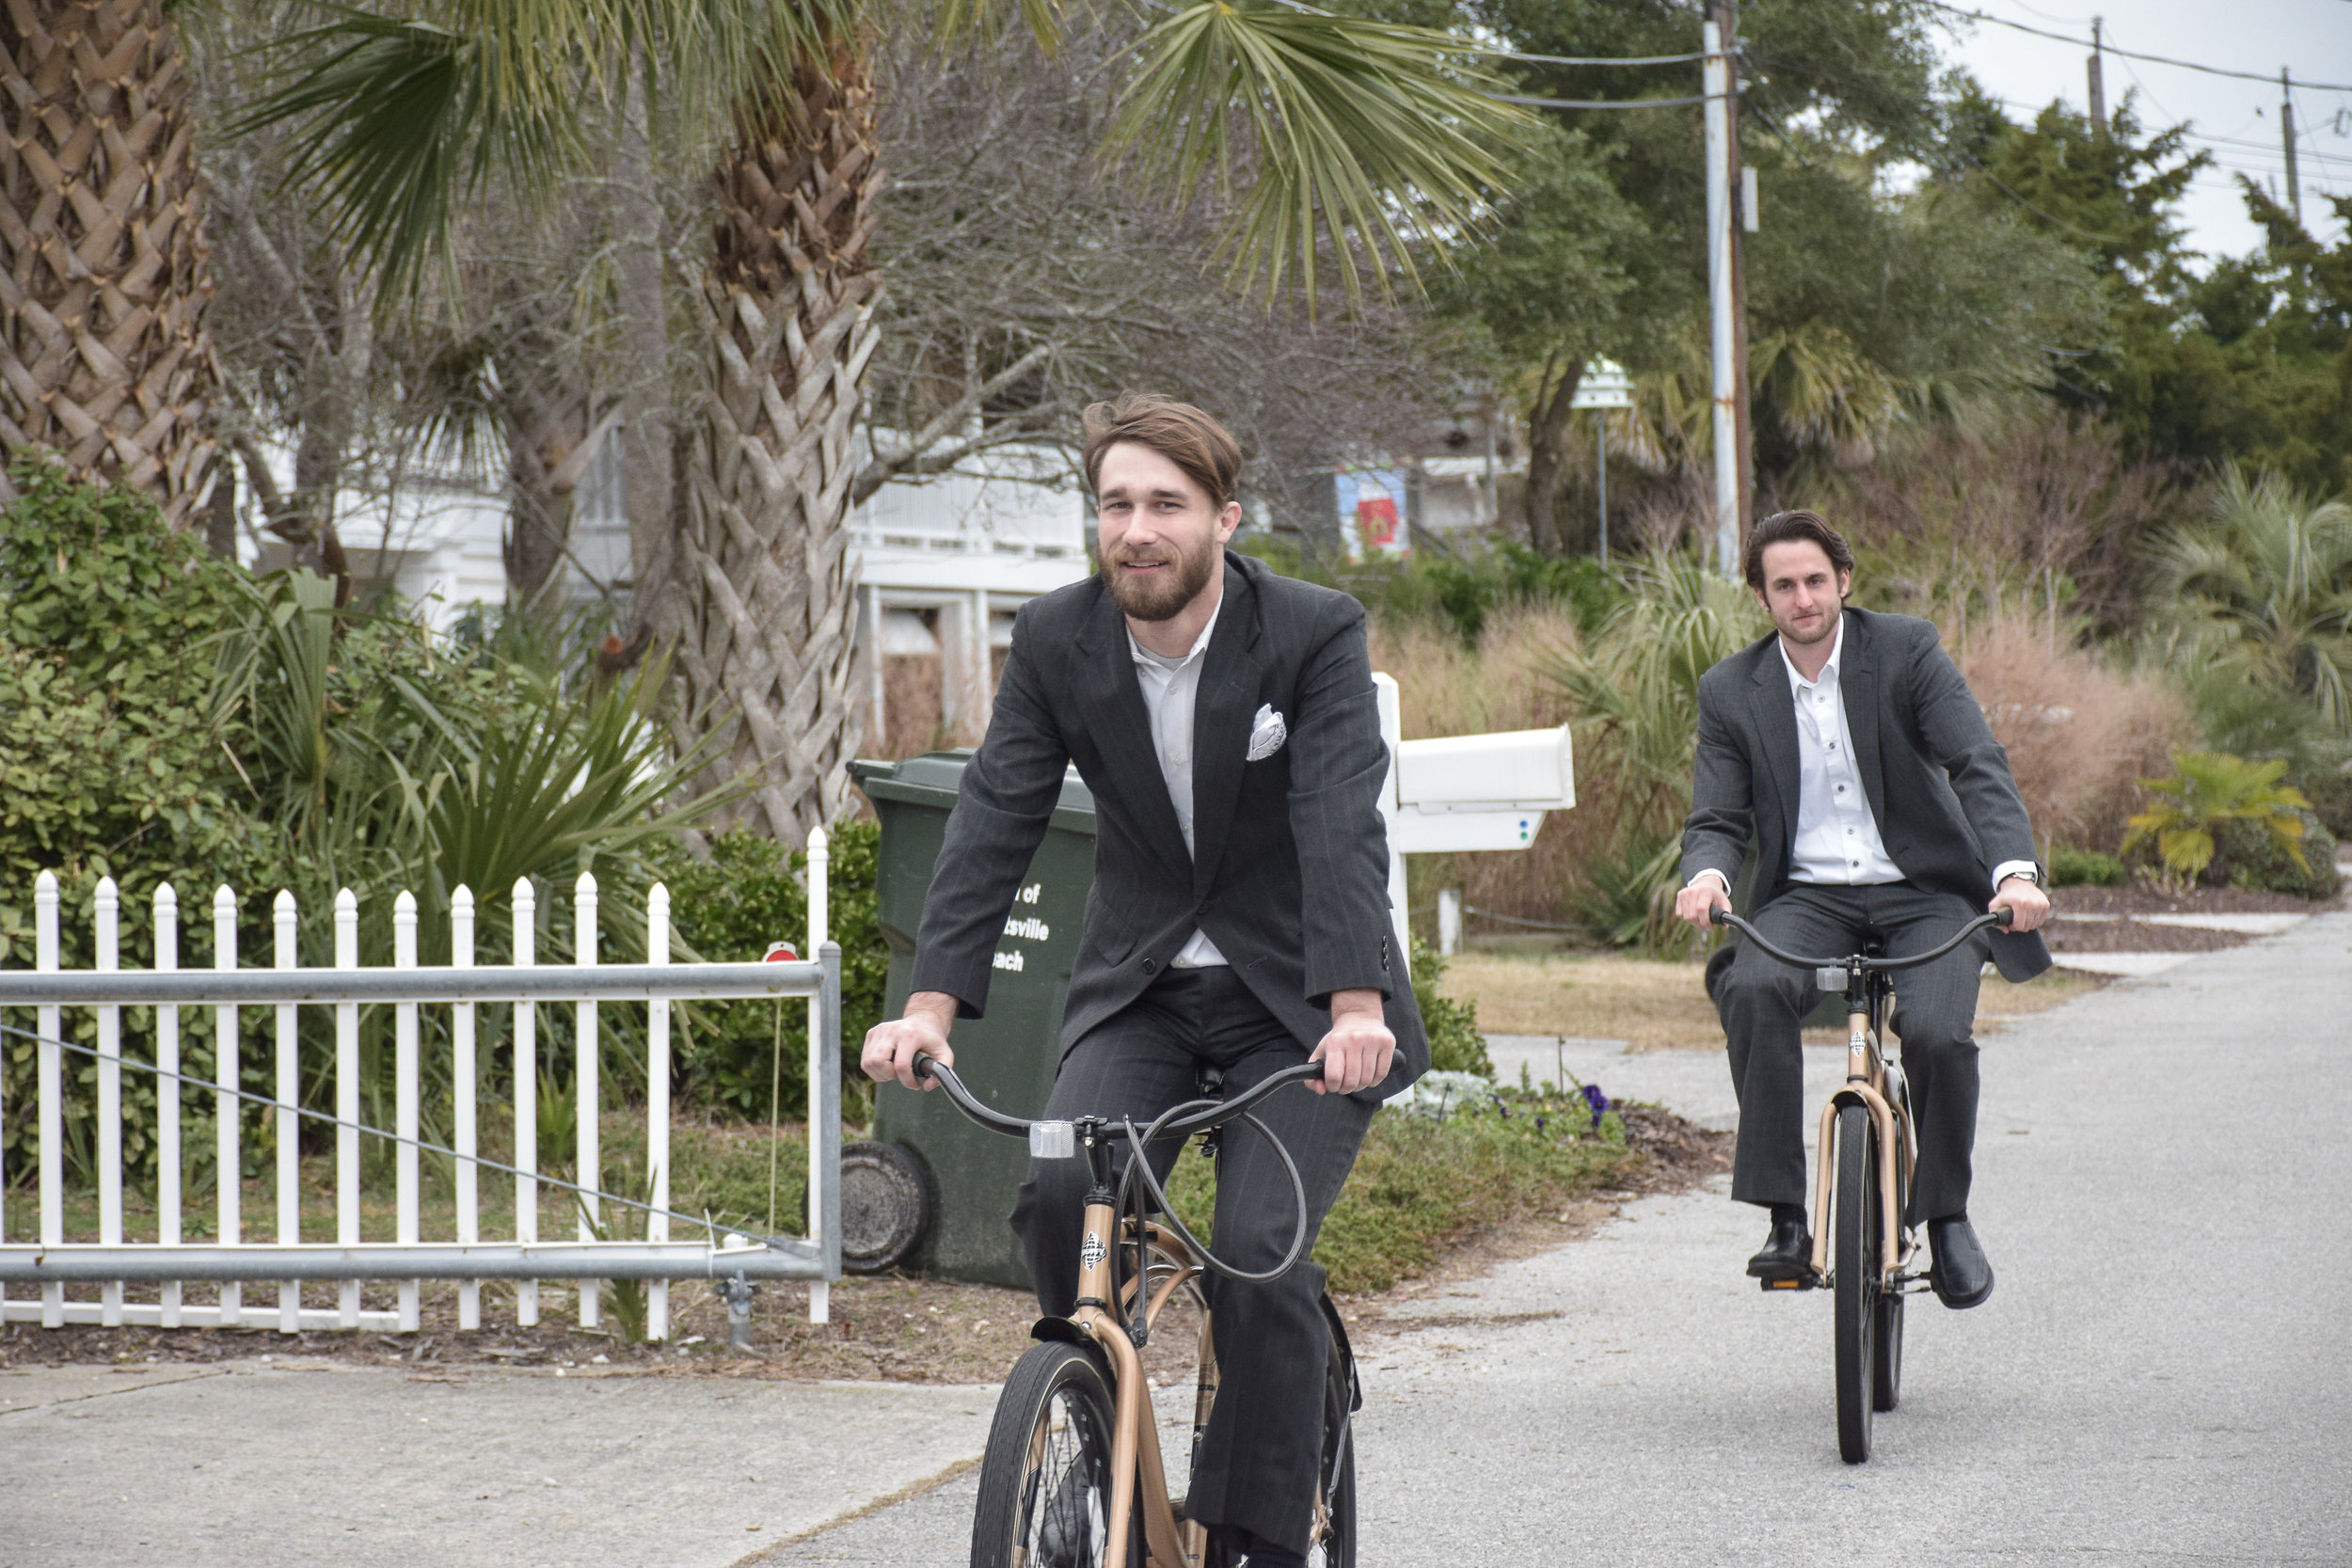 - Groomsmen on bicycles. Wrightsville Beach, NC.